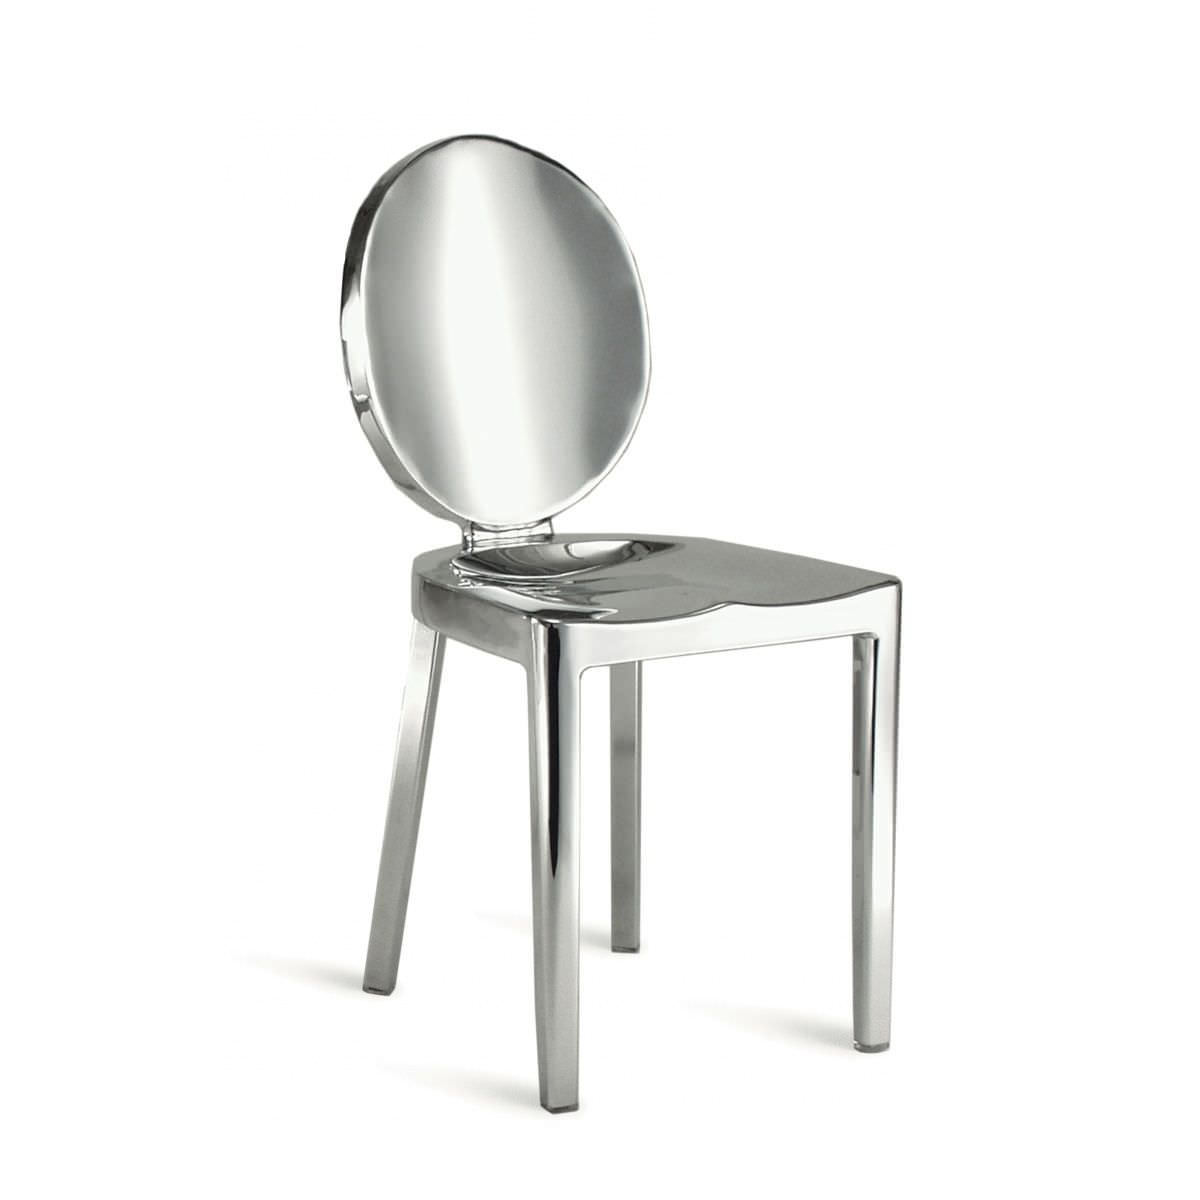 Contemporary chair / medallion / aluminium / by Philippe Starck - KONG :  KONG P